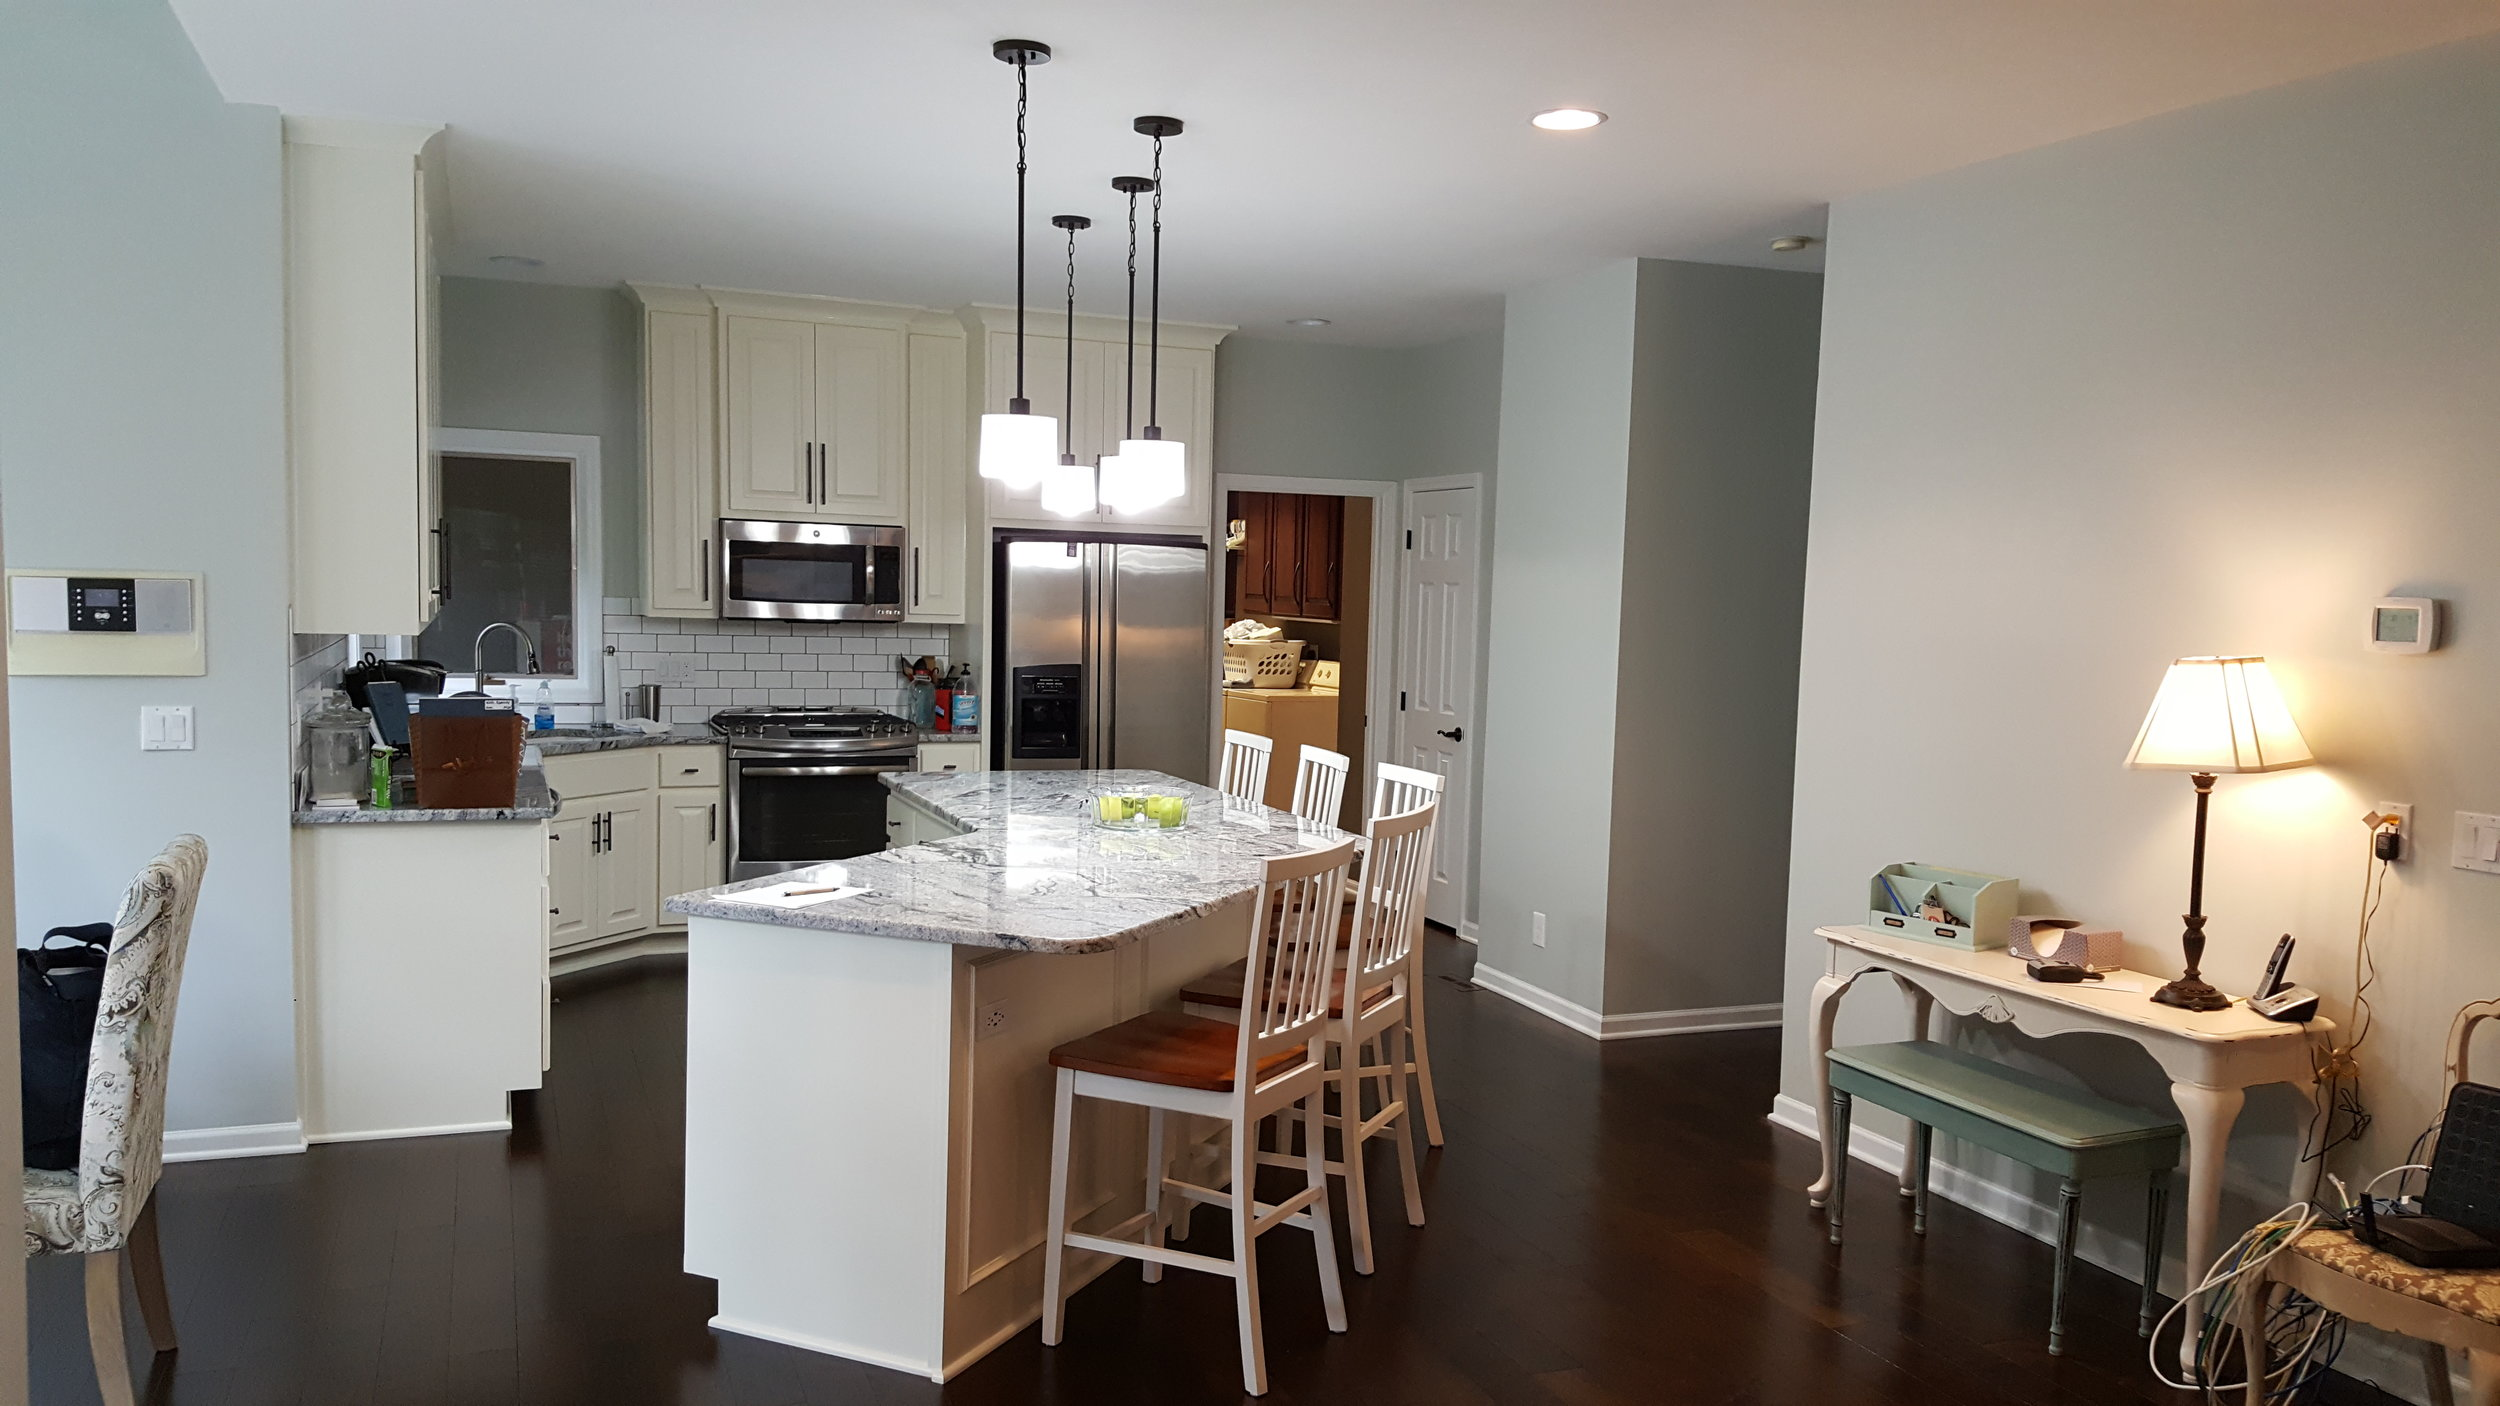 2016 KC NARI Silver Award Winner Residential Kitchen $30,000 to $60,000 (after picture)